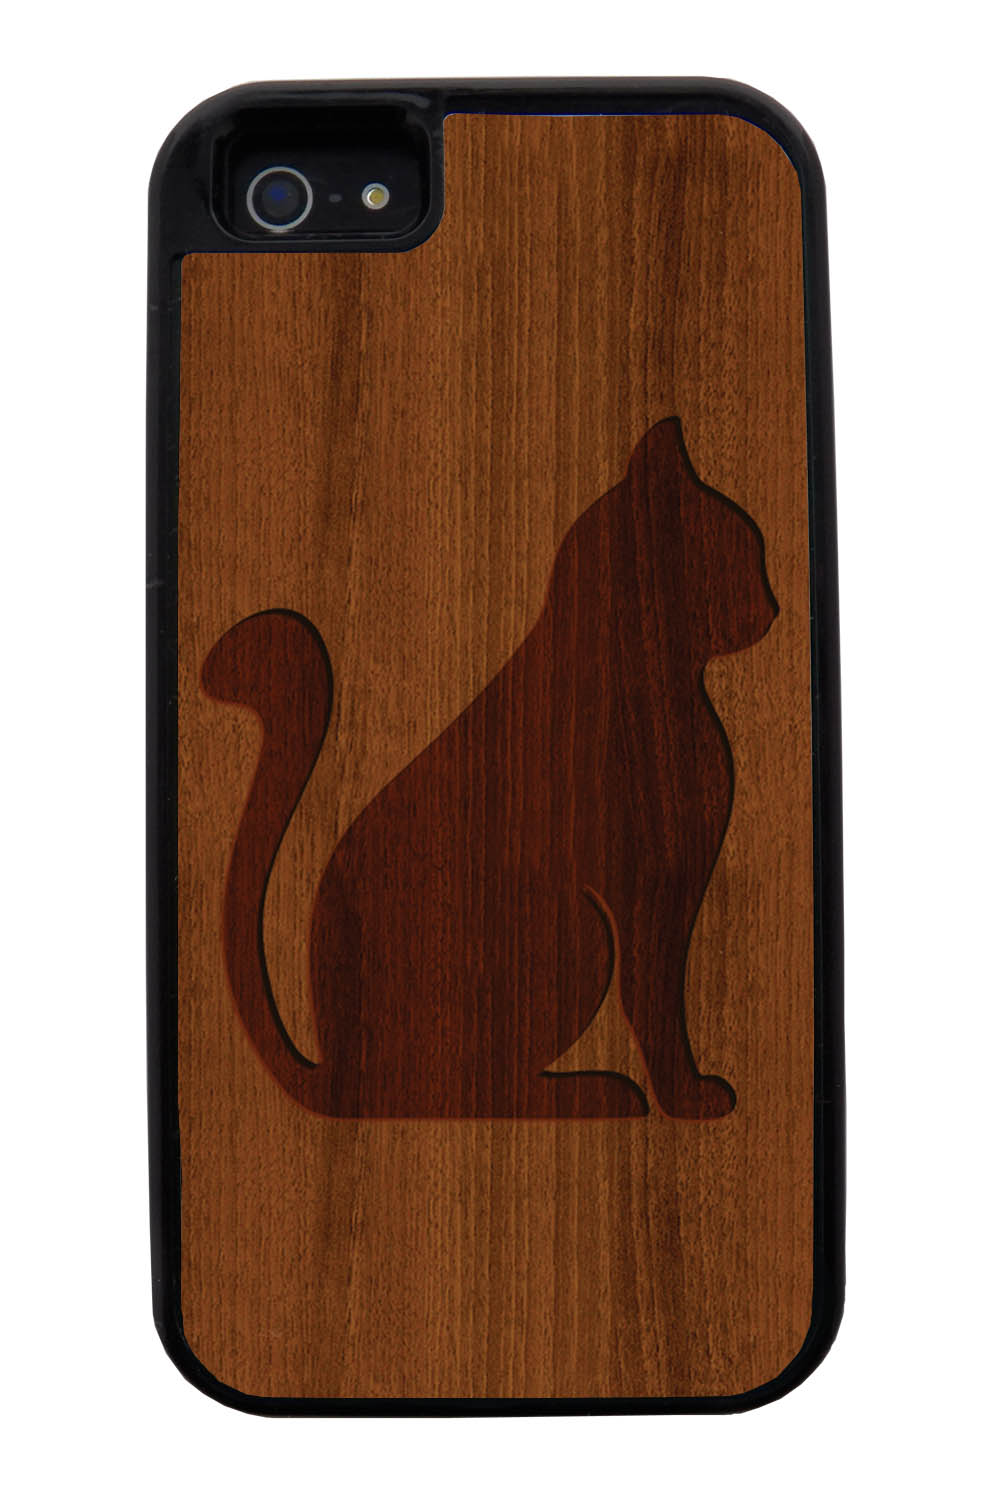 Apple iPhone 5 / 5S Cat Case - Simulated Cherry Wood Engraving Sitting Cat - Simple Stencils Cutout - Black Tough Hybrid Case